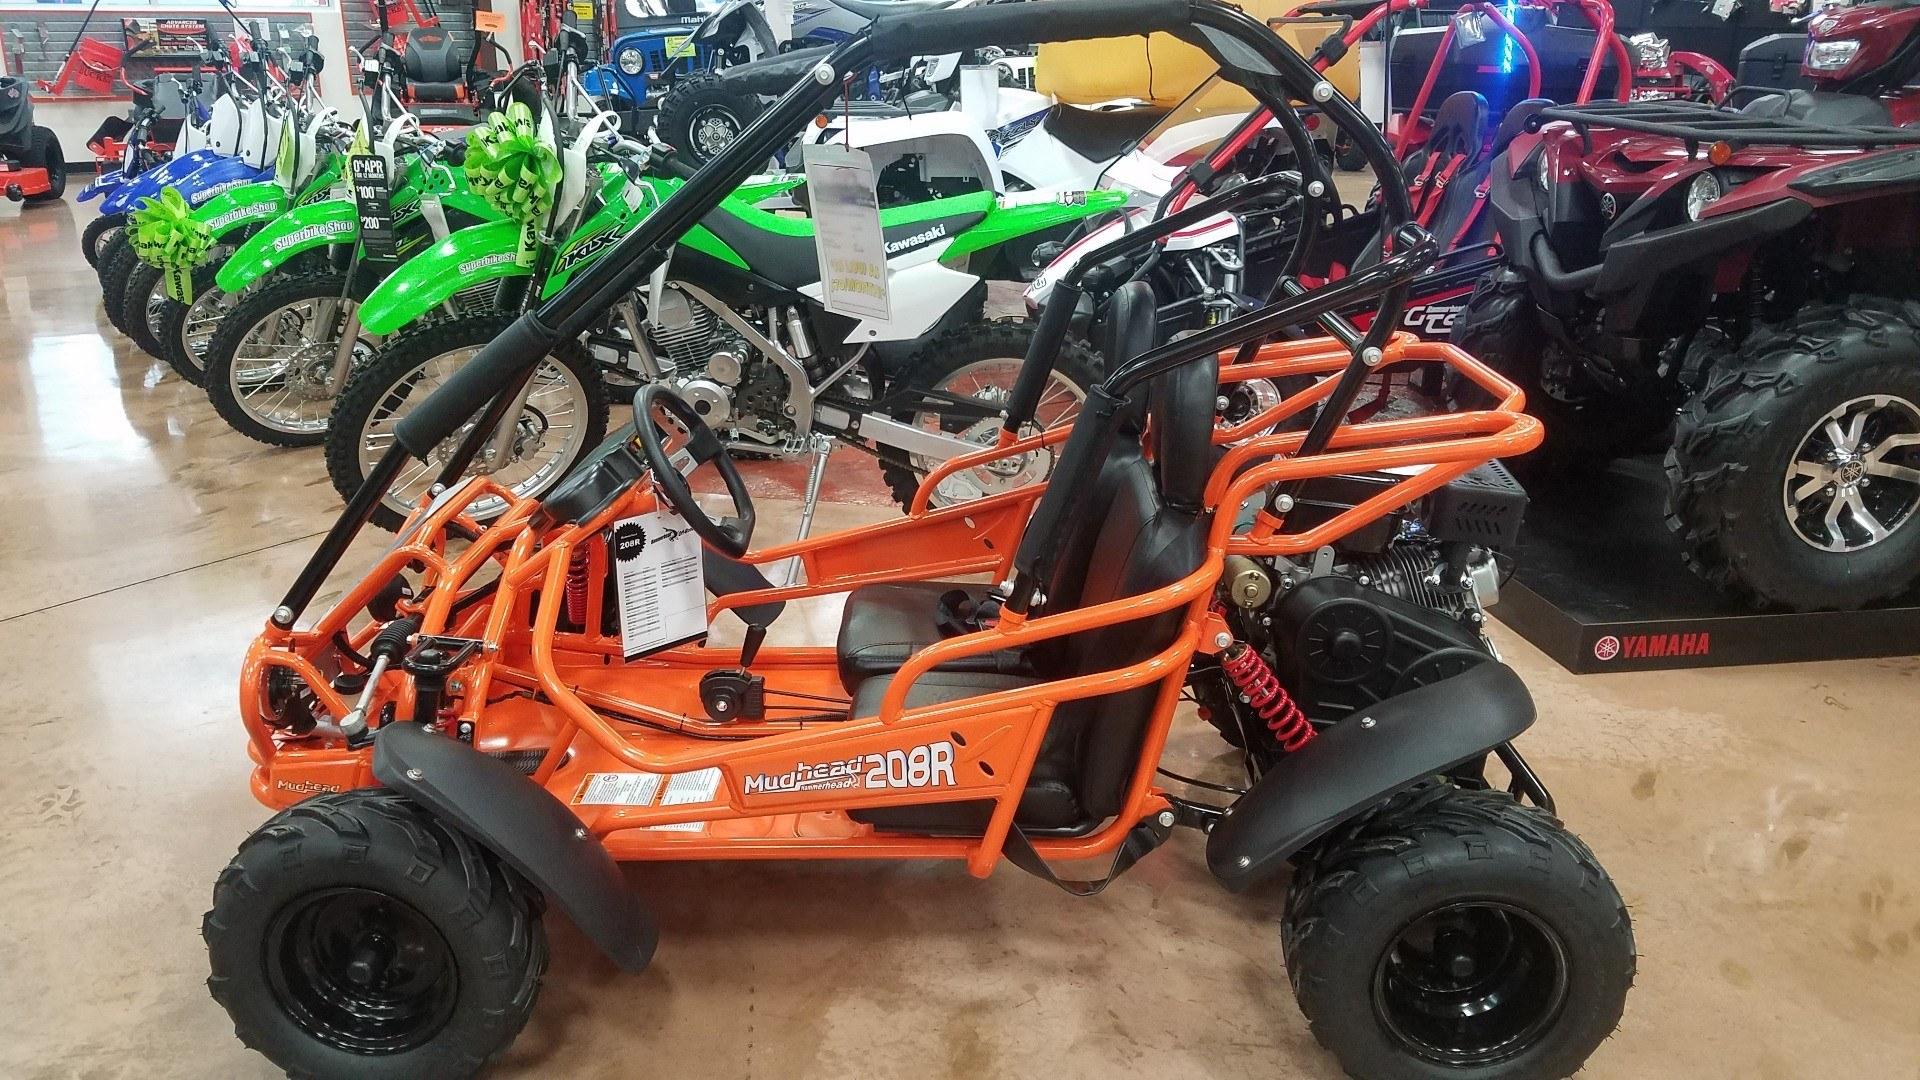 2018 Hammerhead Off-Road MudHead 208R in Evansville, Indiana - Photo 8